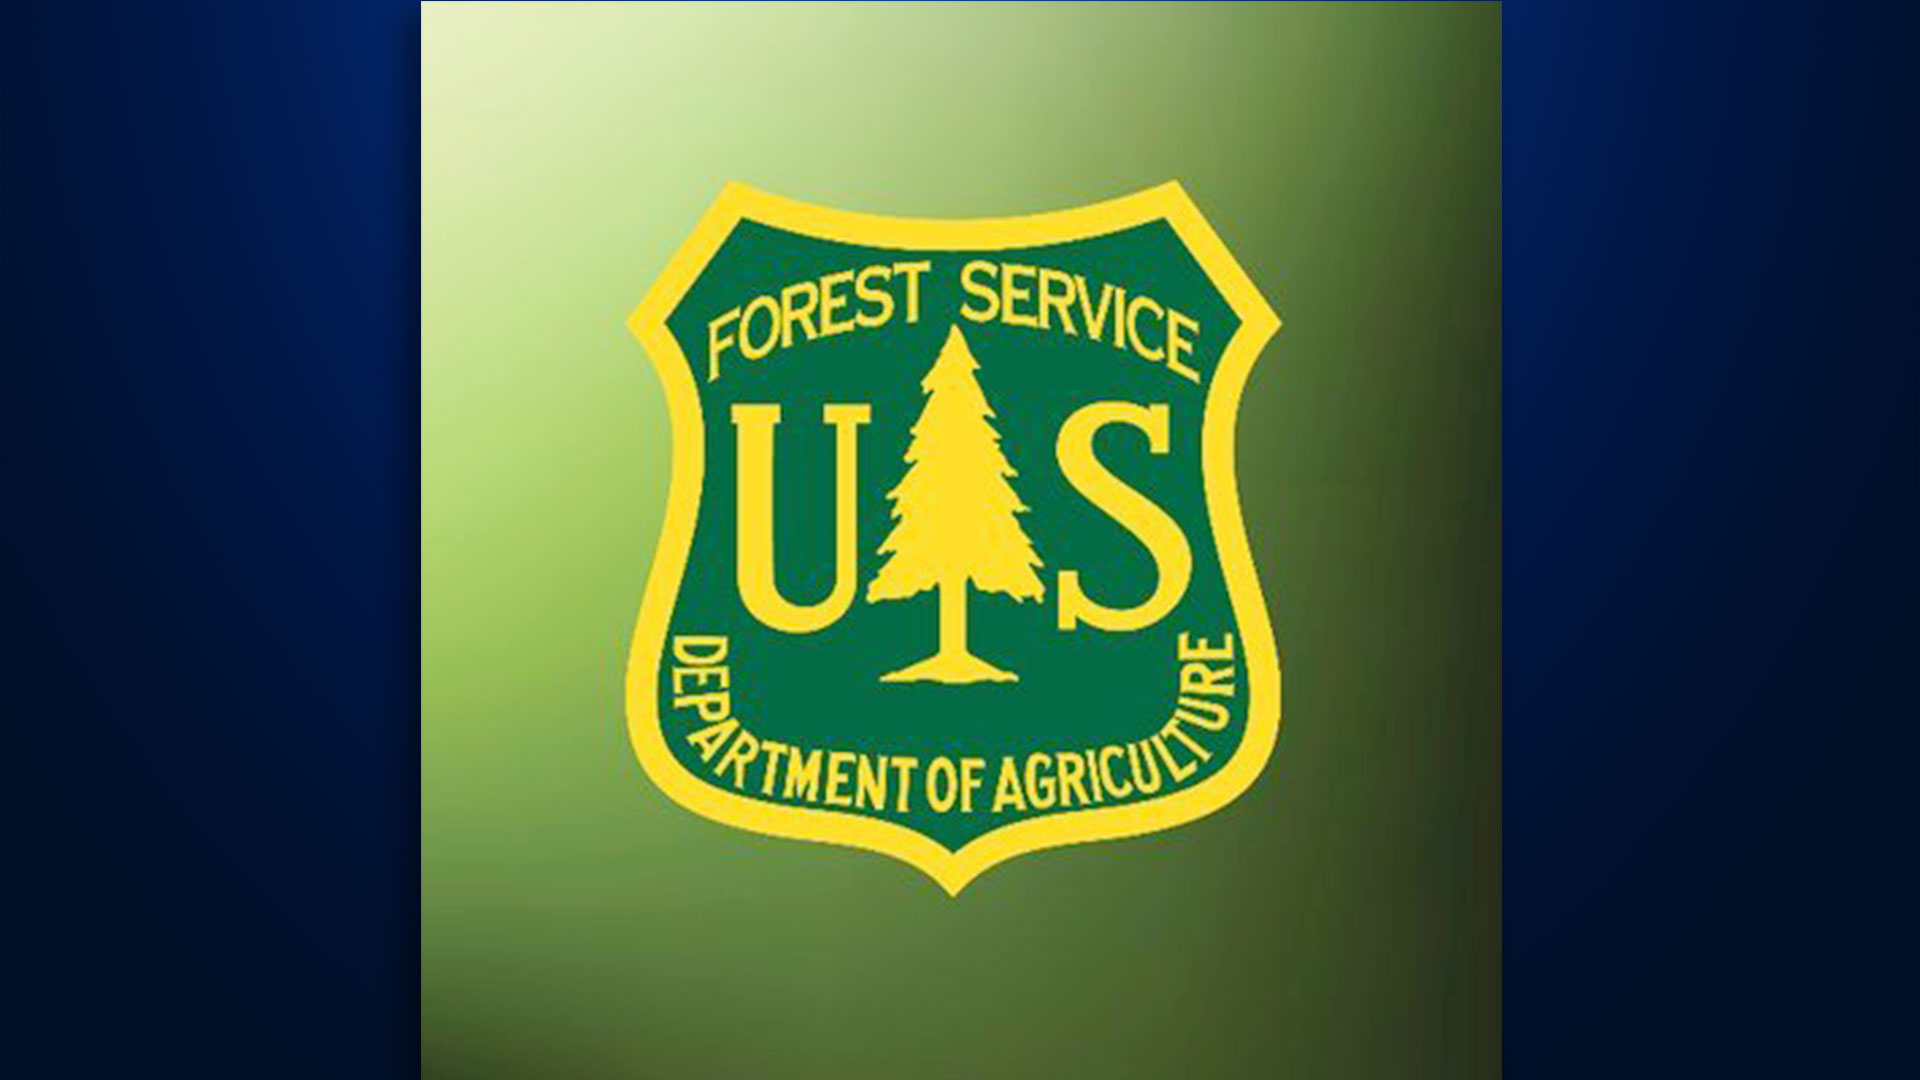 KELO Forest Service